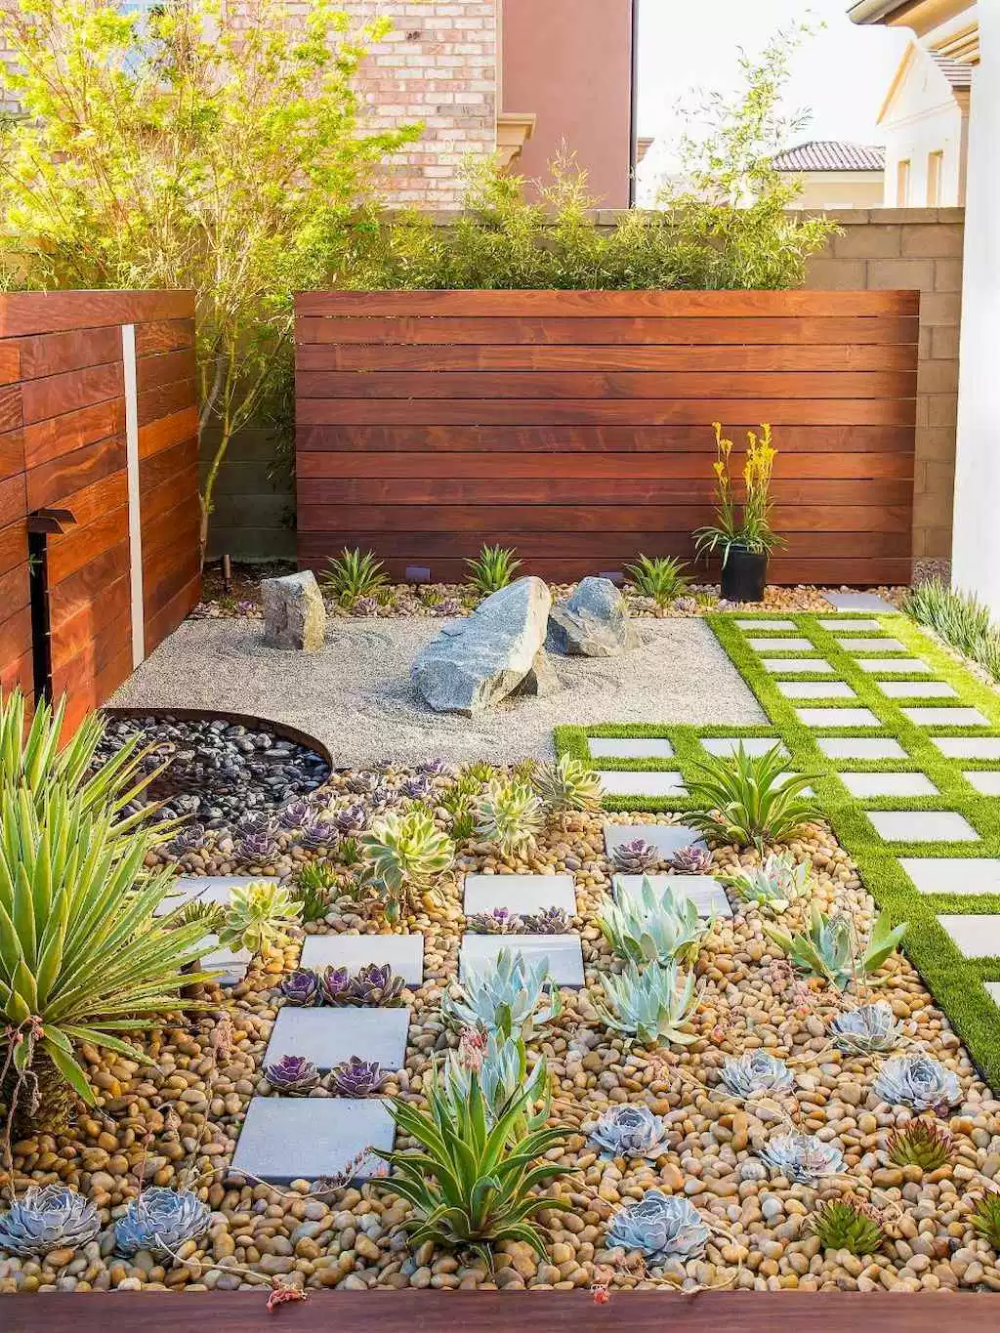 Simple clean modern front yard landscaping ideas (57 ...